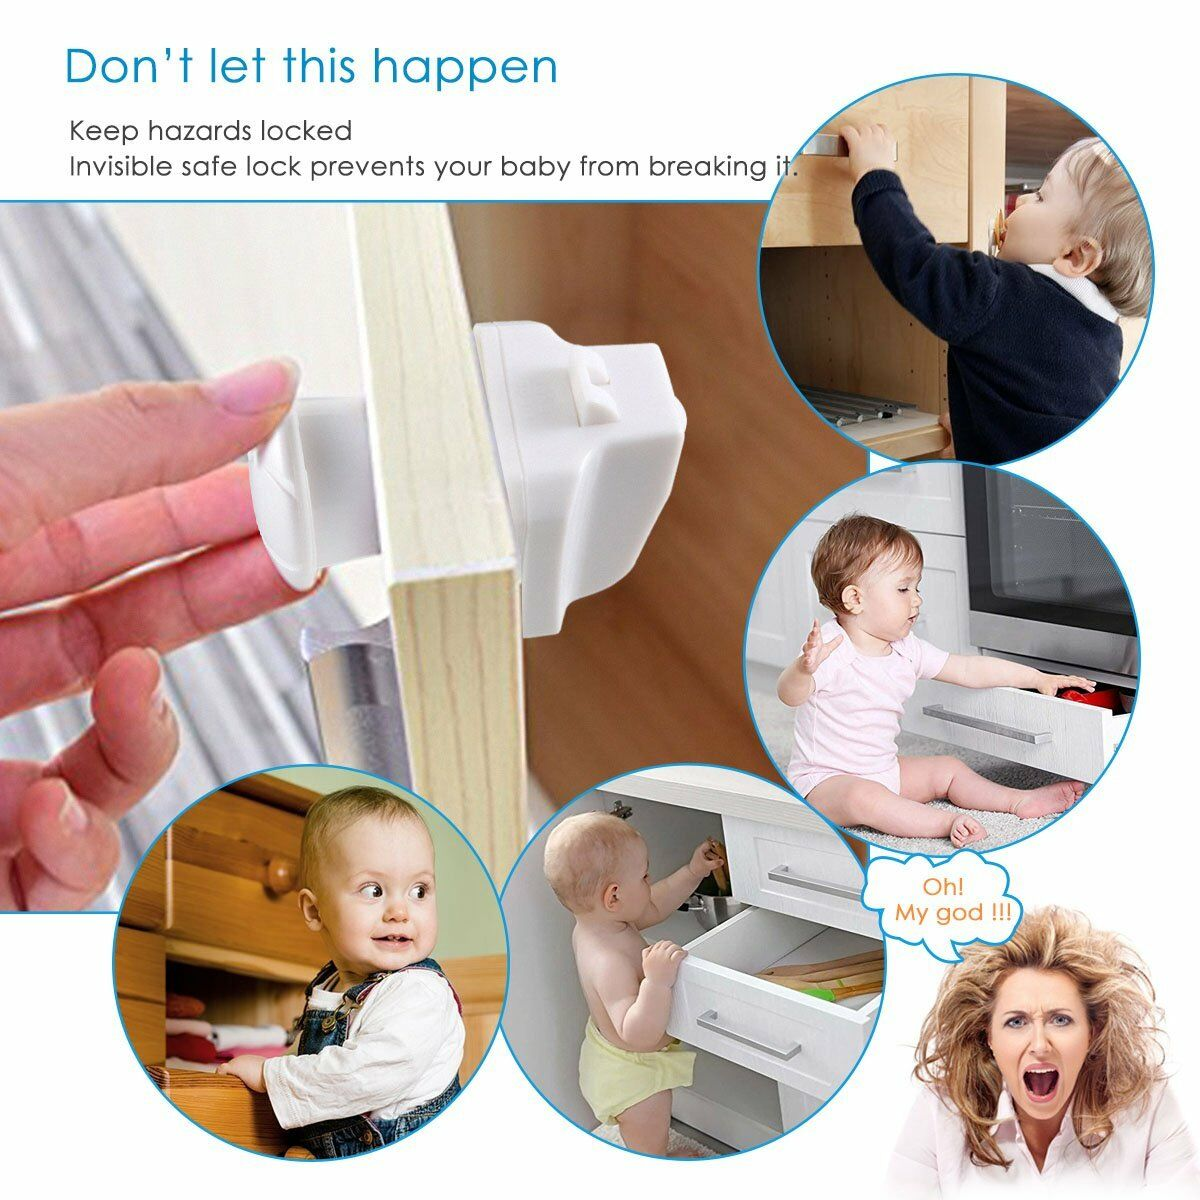 10PCS Magnetic Cabinet Drawer Cupboard Locks for Baby Kids Safety Child Proofing 2